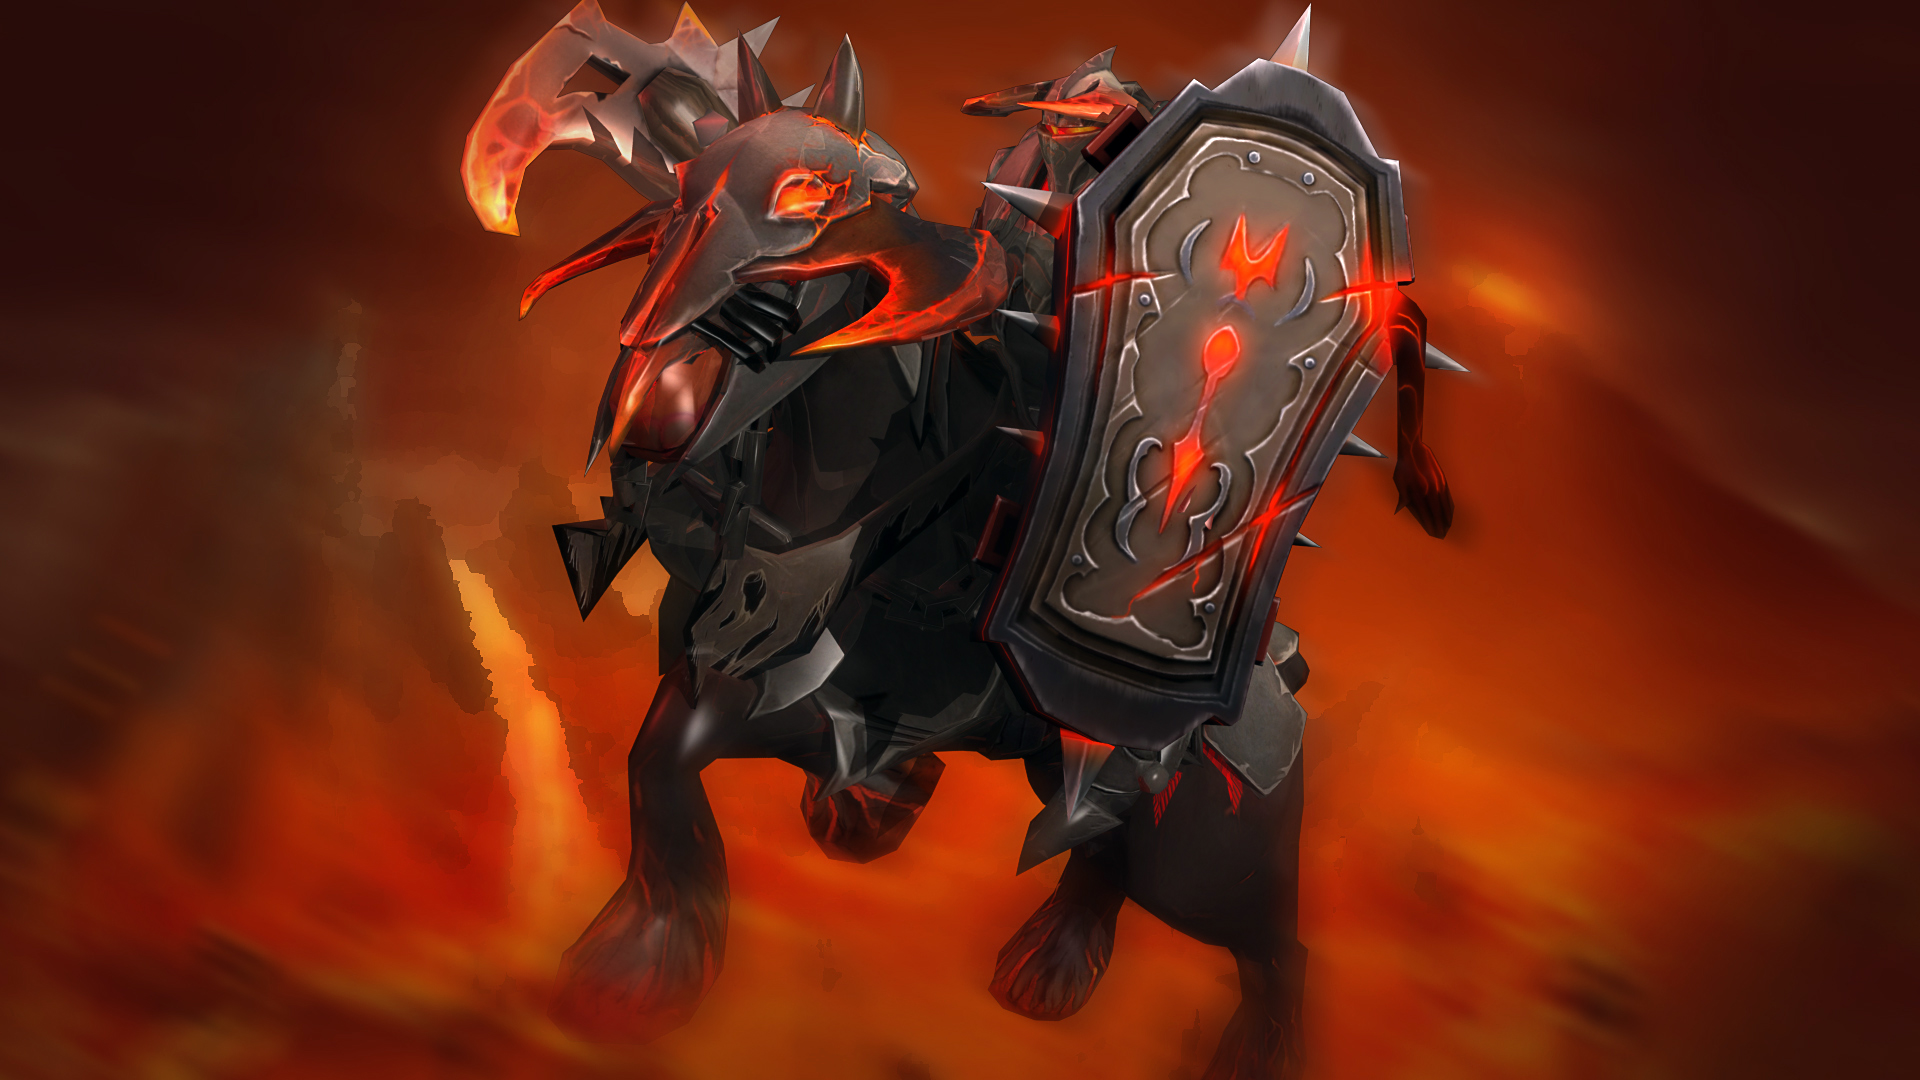 Chaos Knight Wallpapers Dota 2 HD Wallpapers #3